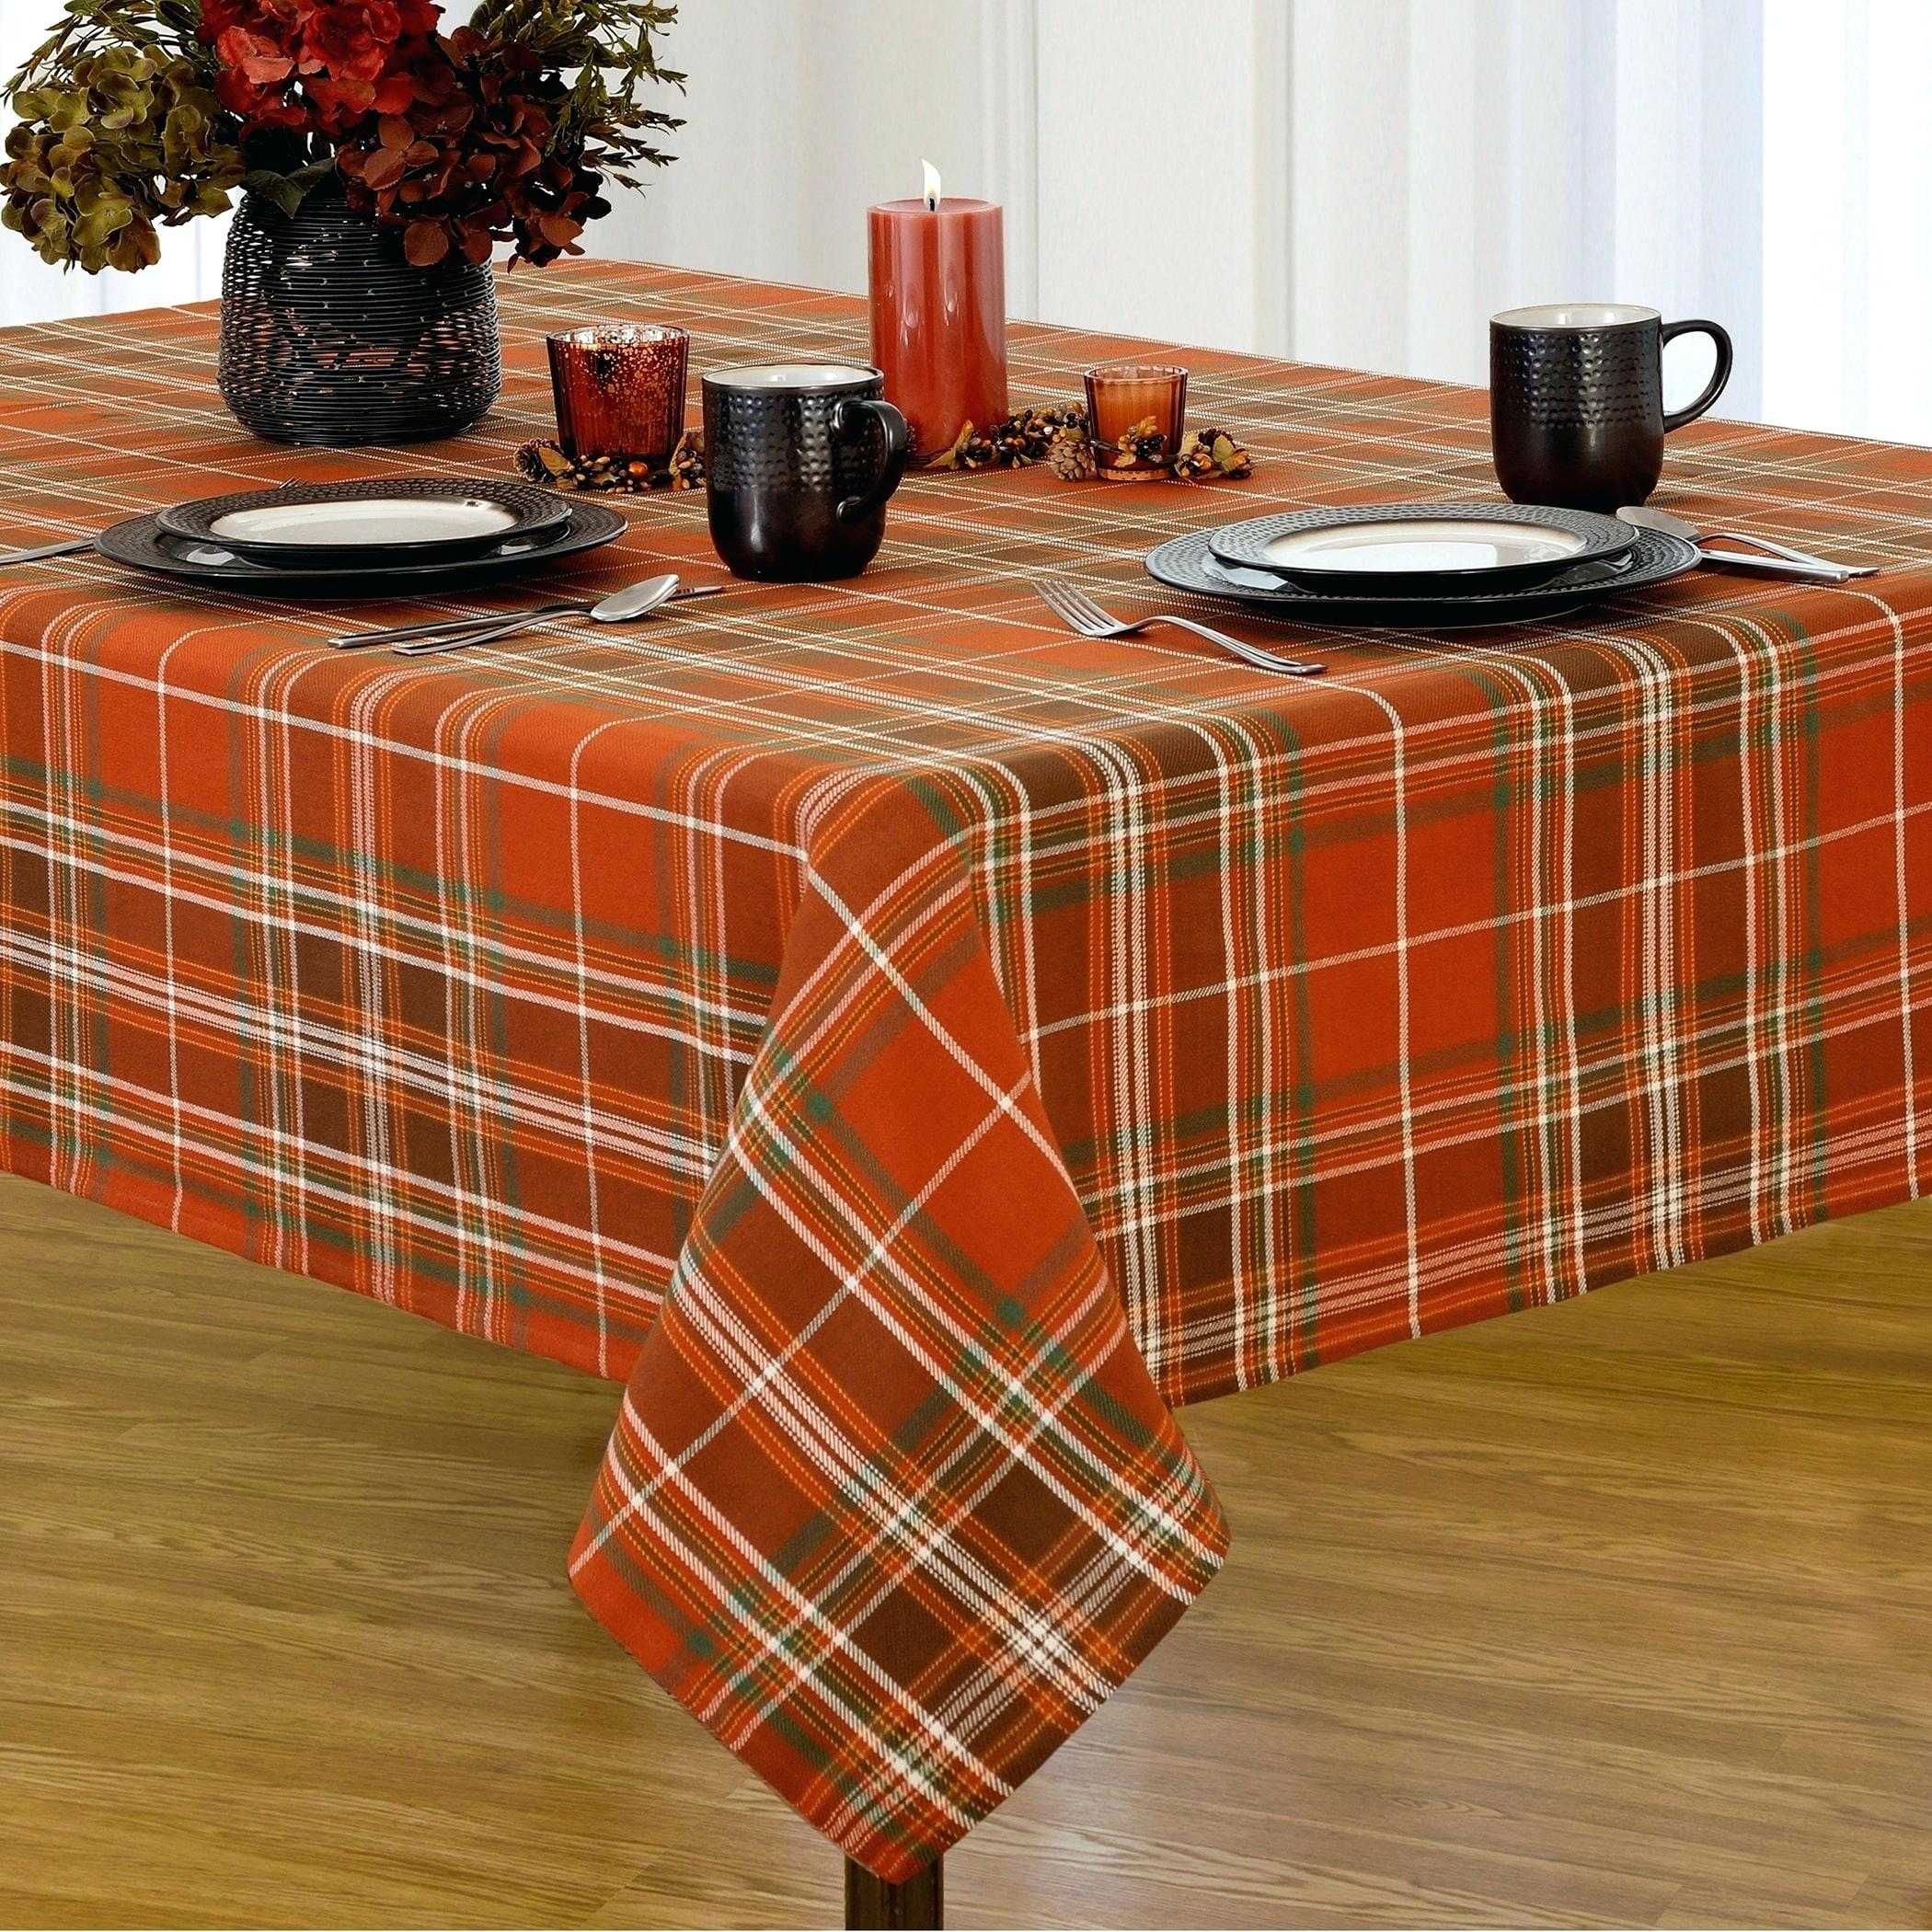 round accent table covers end cloth cover plaid fabric harvest cotton woven tablecloth for small solid oak lamp mid century replica furniture electric drum set gallerie chandelier